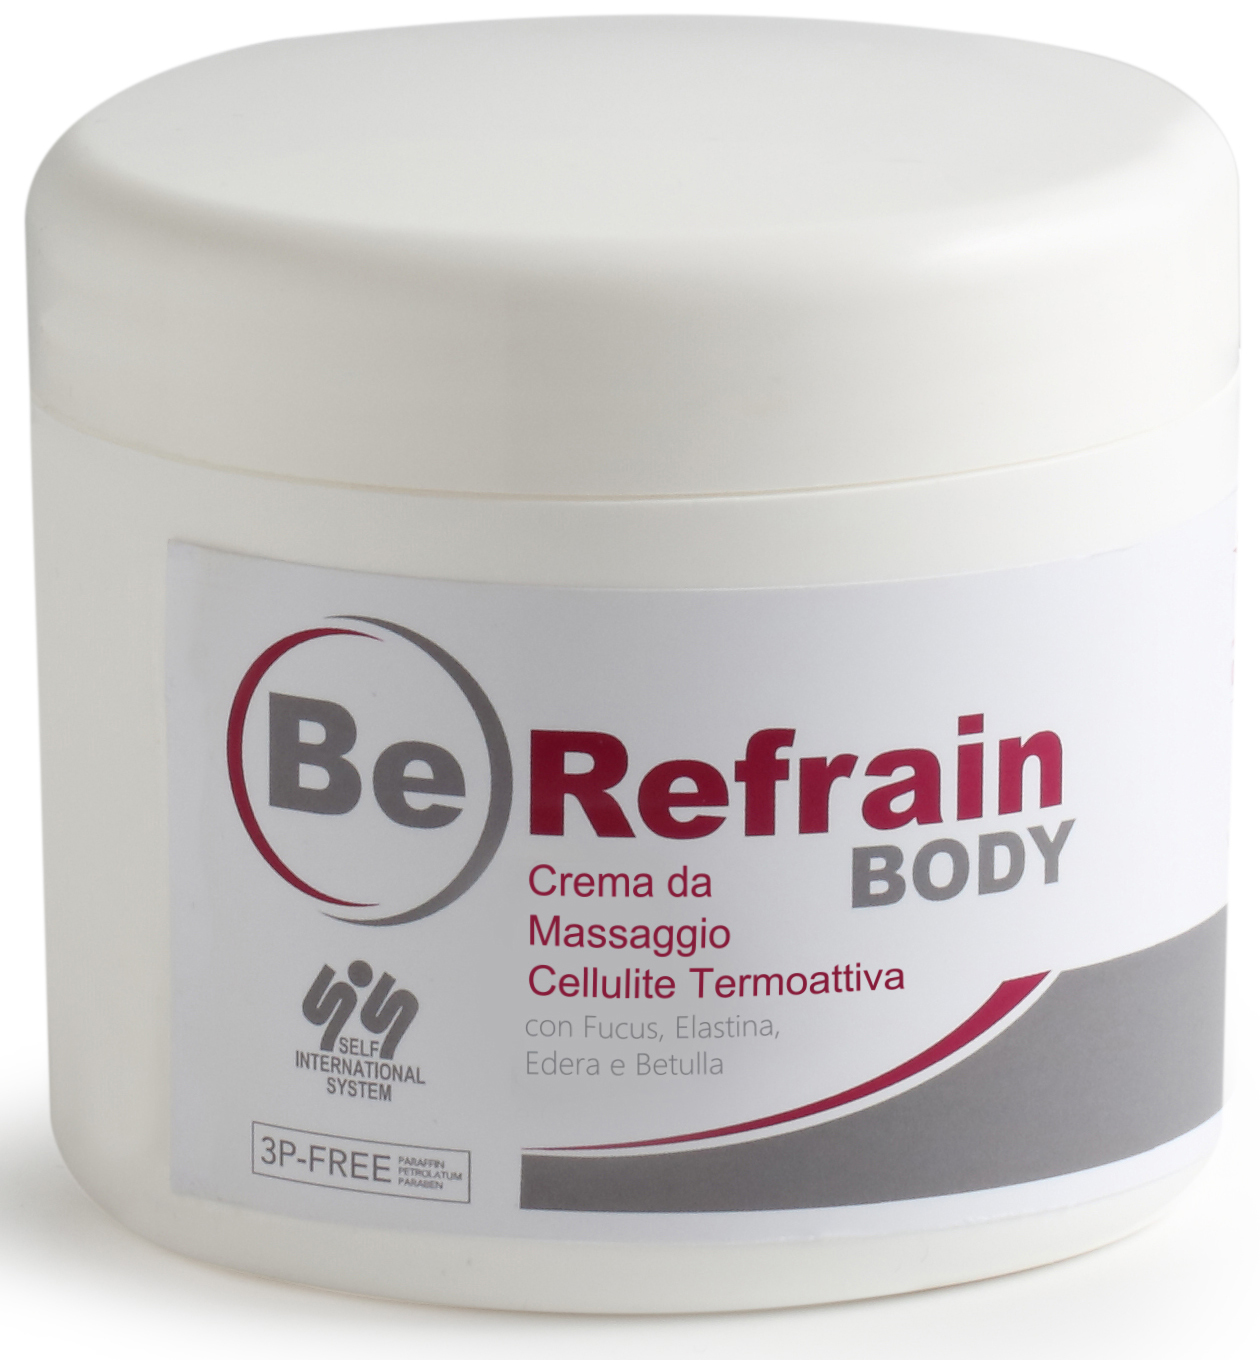 Crema Massaggio Riducente-Cellulite Be Refrain da ml 500 in omaggio!